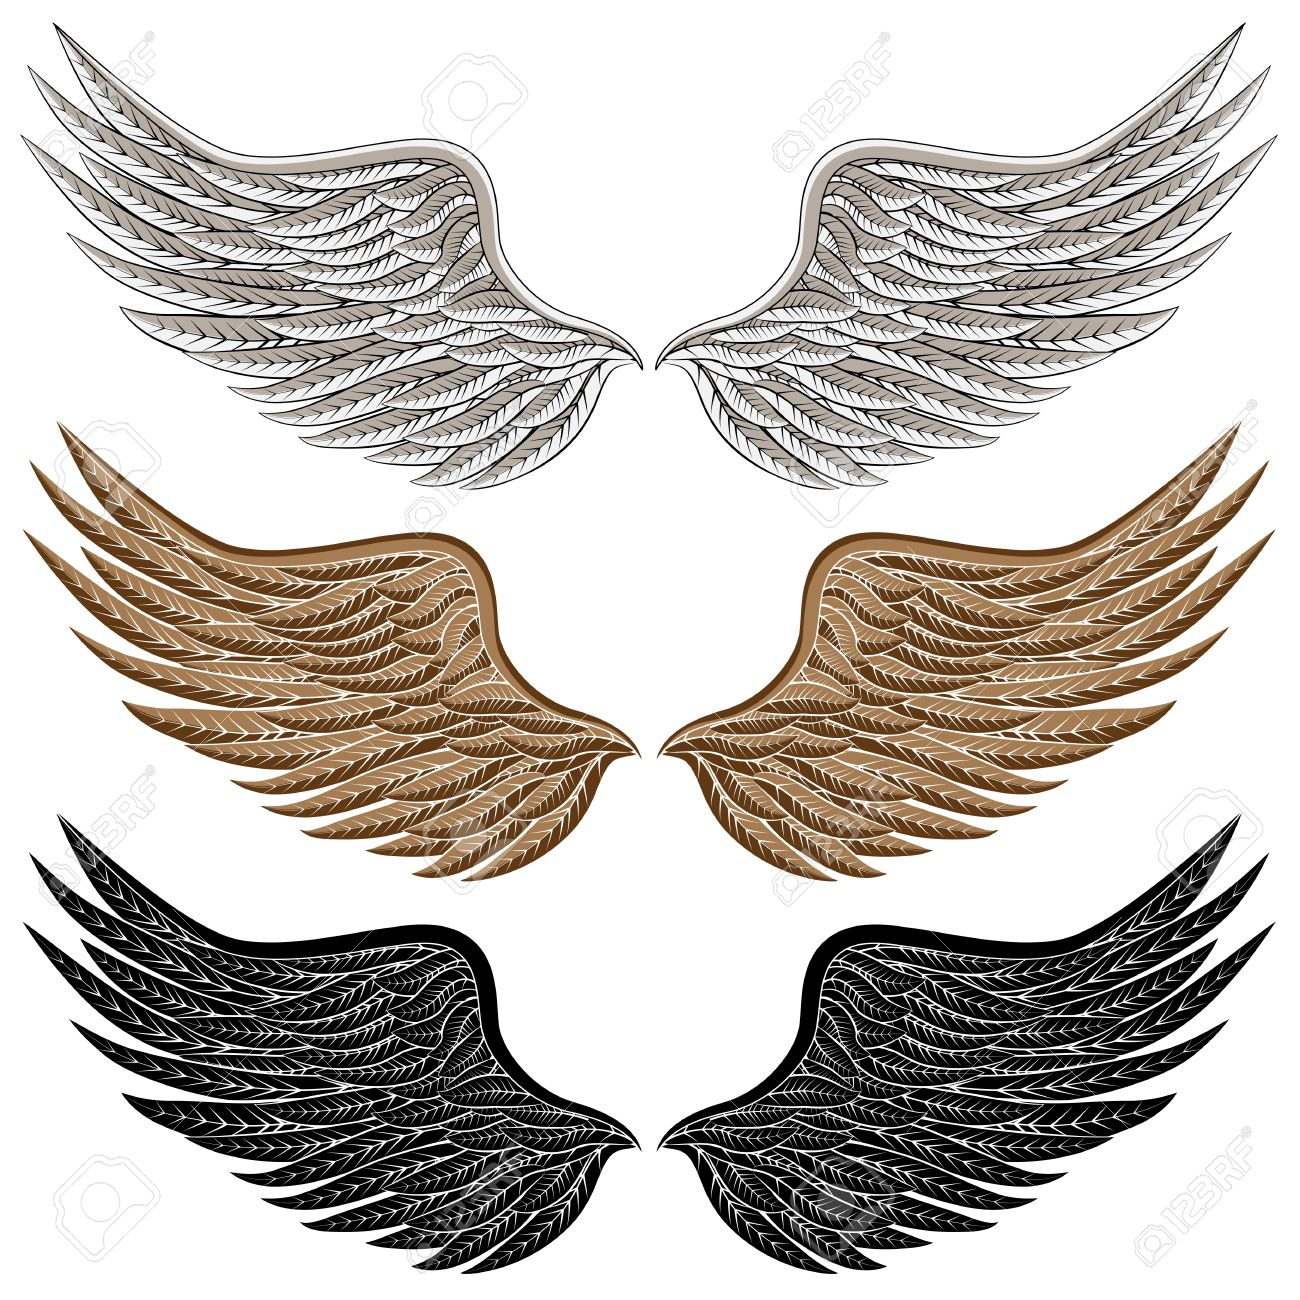 An Image Of A Detailed Bird Wings. Royalty Free Cliparts, Vectors.